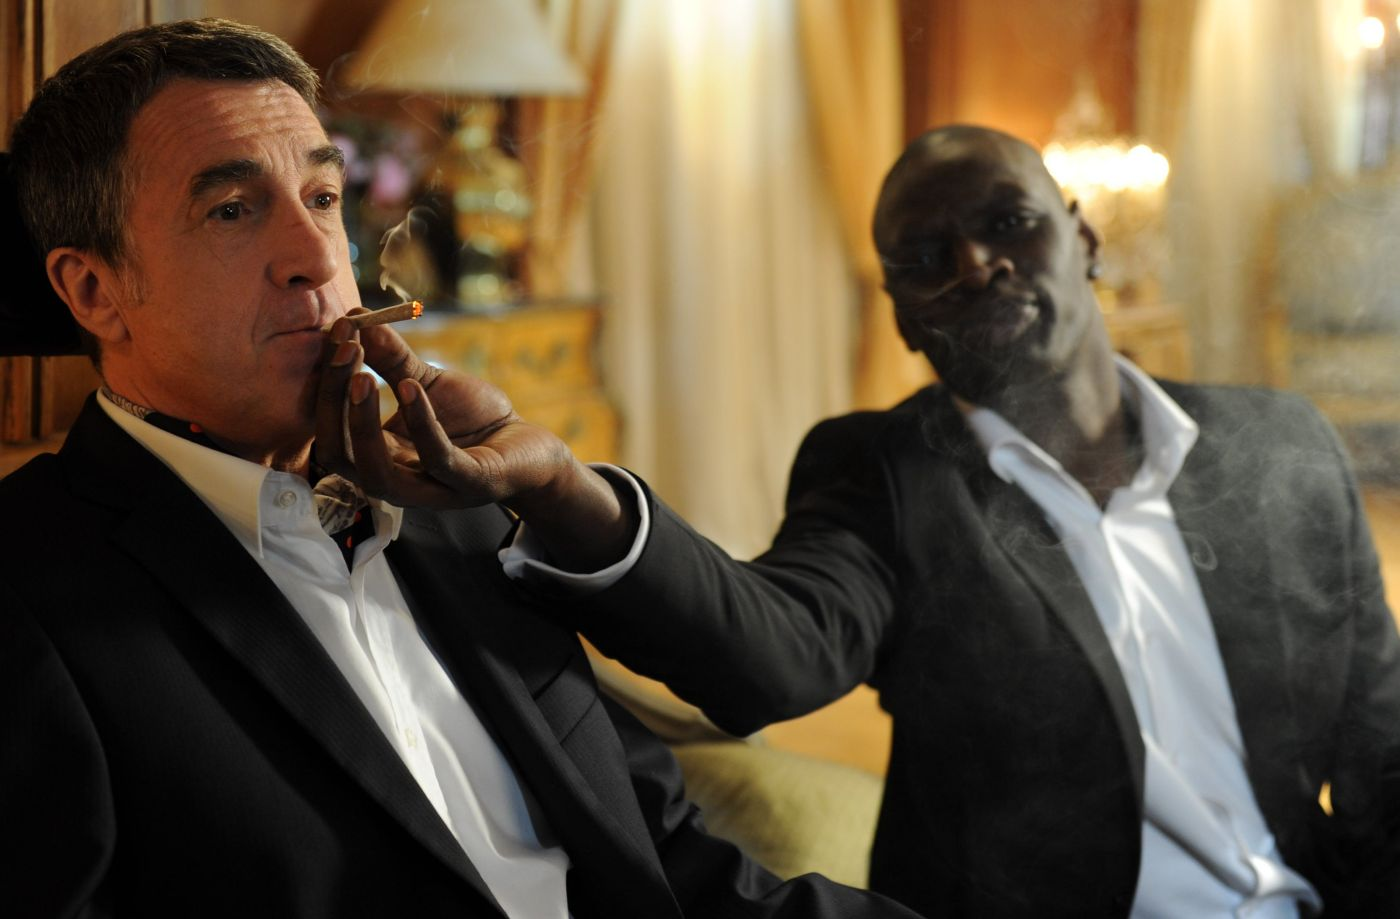 The Intouchables (2011) by Olivier Nakache